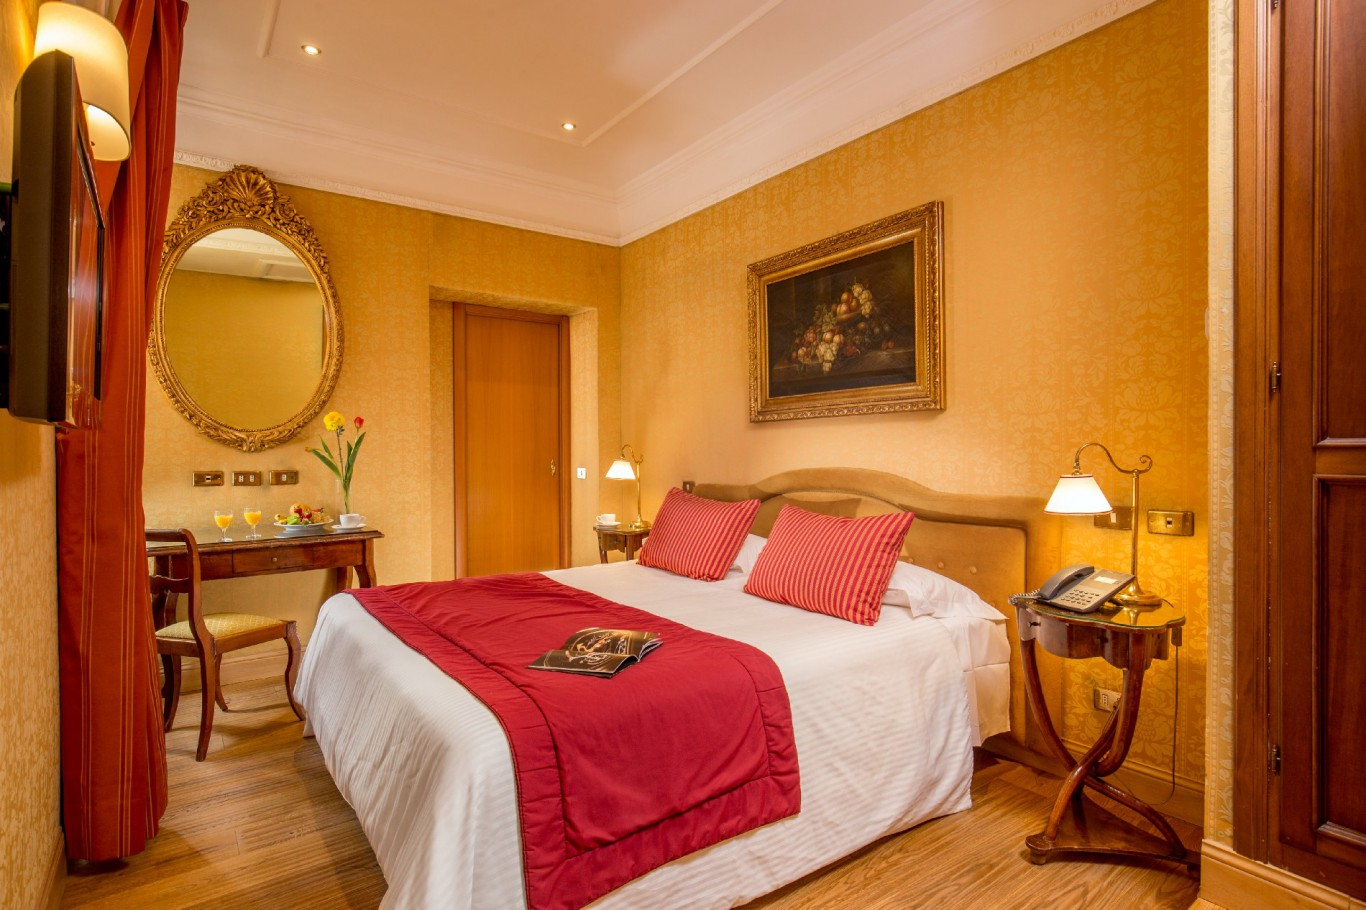 Hotel-Morgana-Rome-deluxe-room